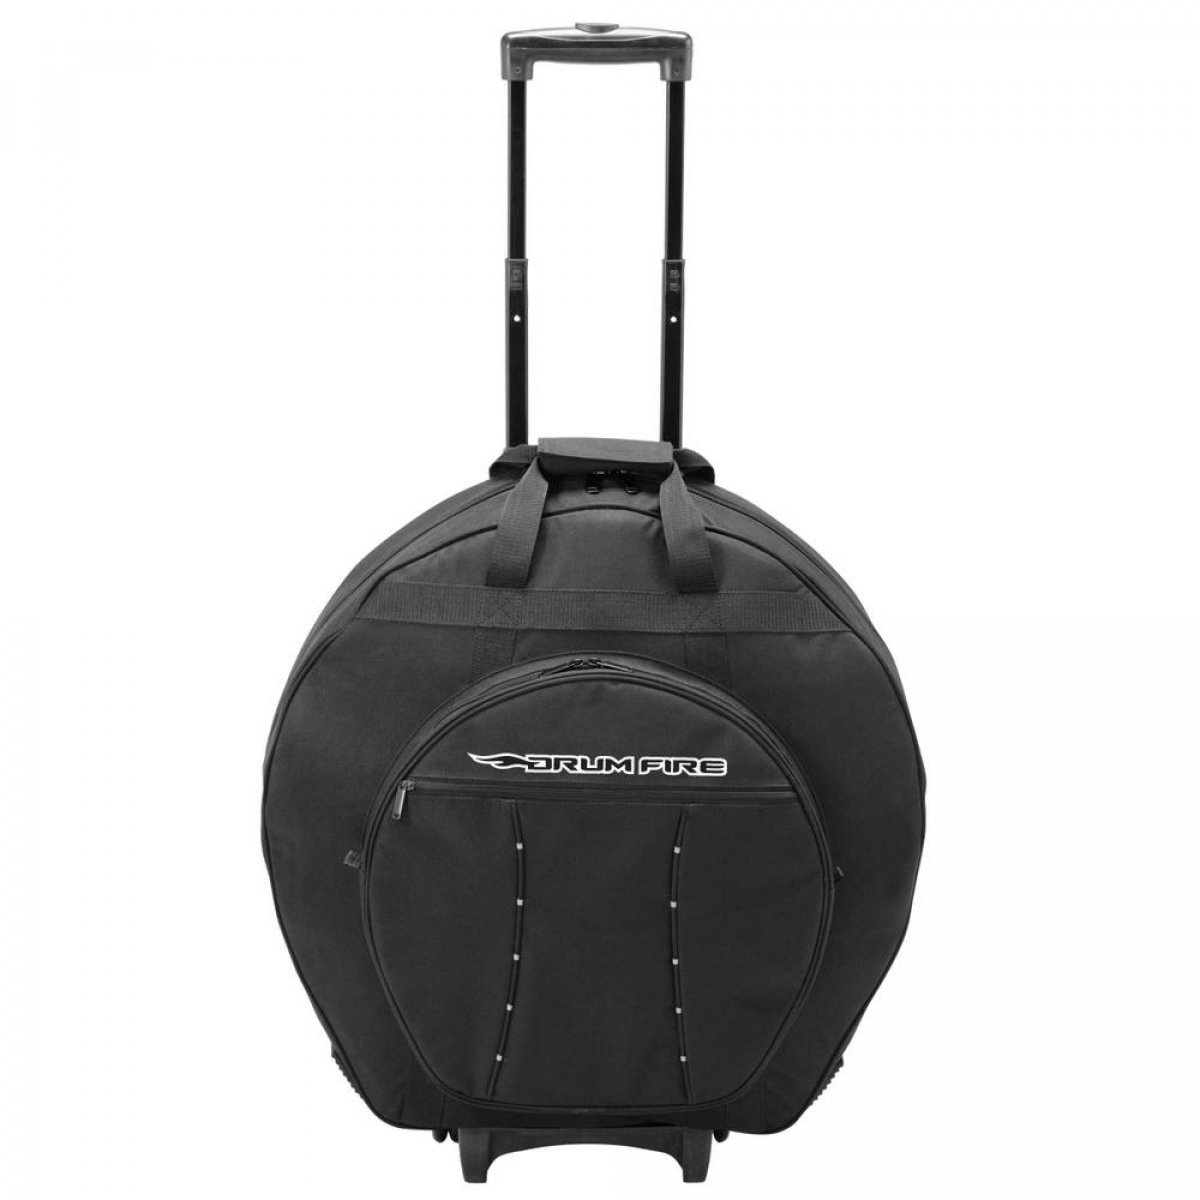 OnStage Cymbal Trolley Bag